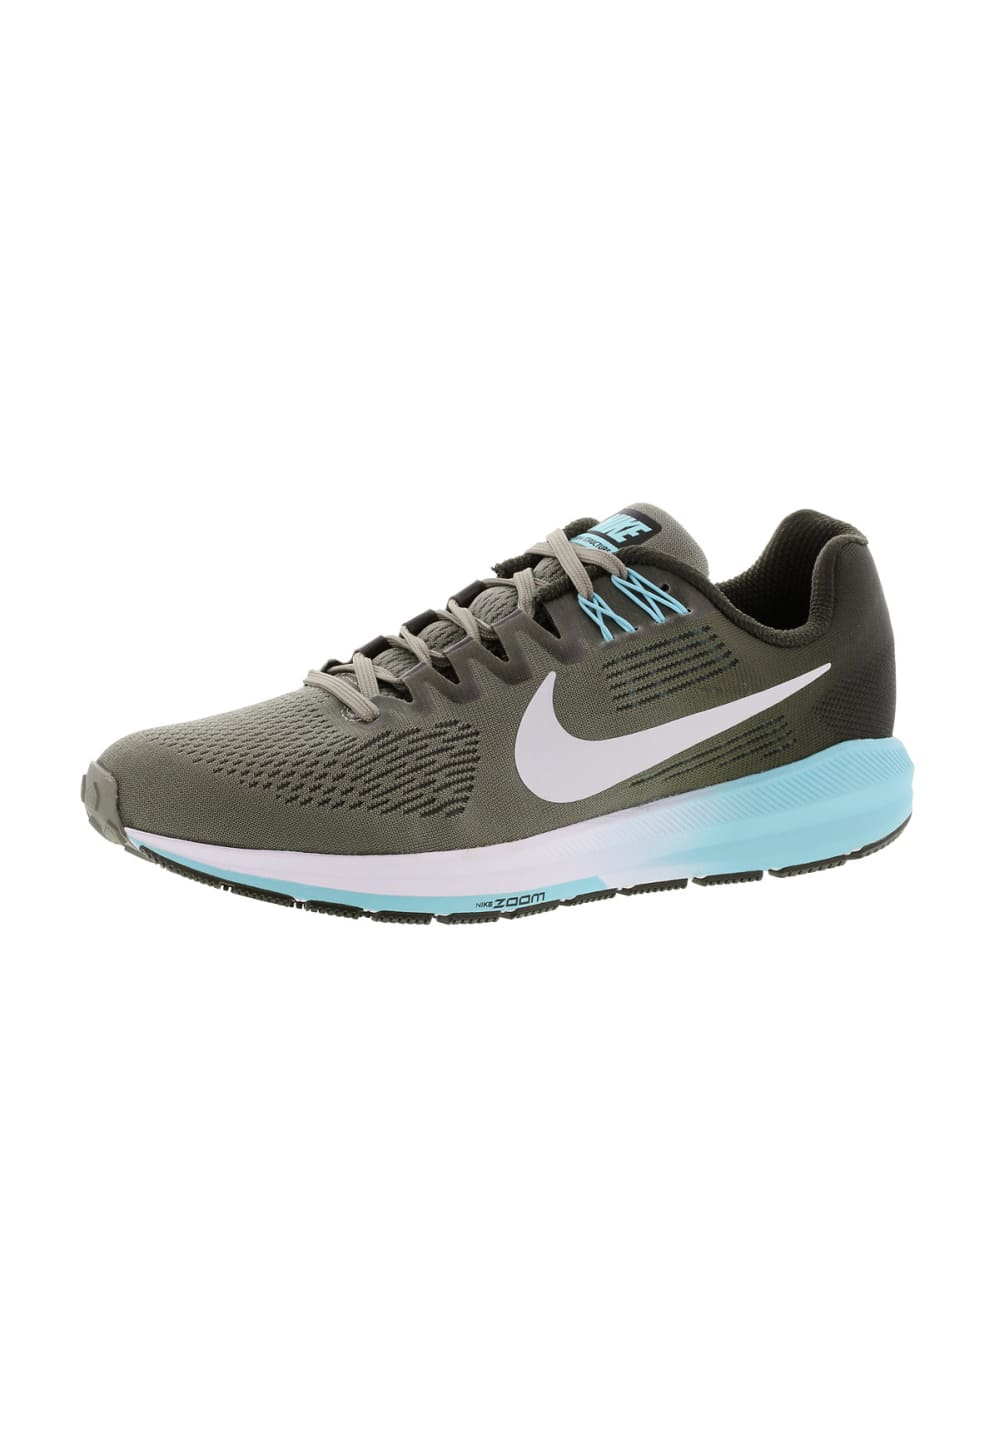 newest 0ad2b 2c69f Nike Air Zoom Structure 21 - Running shoes for Women - Green